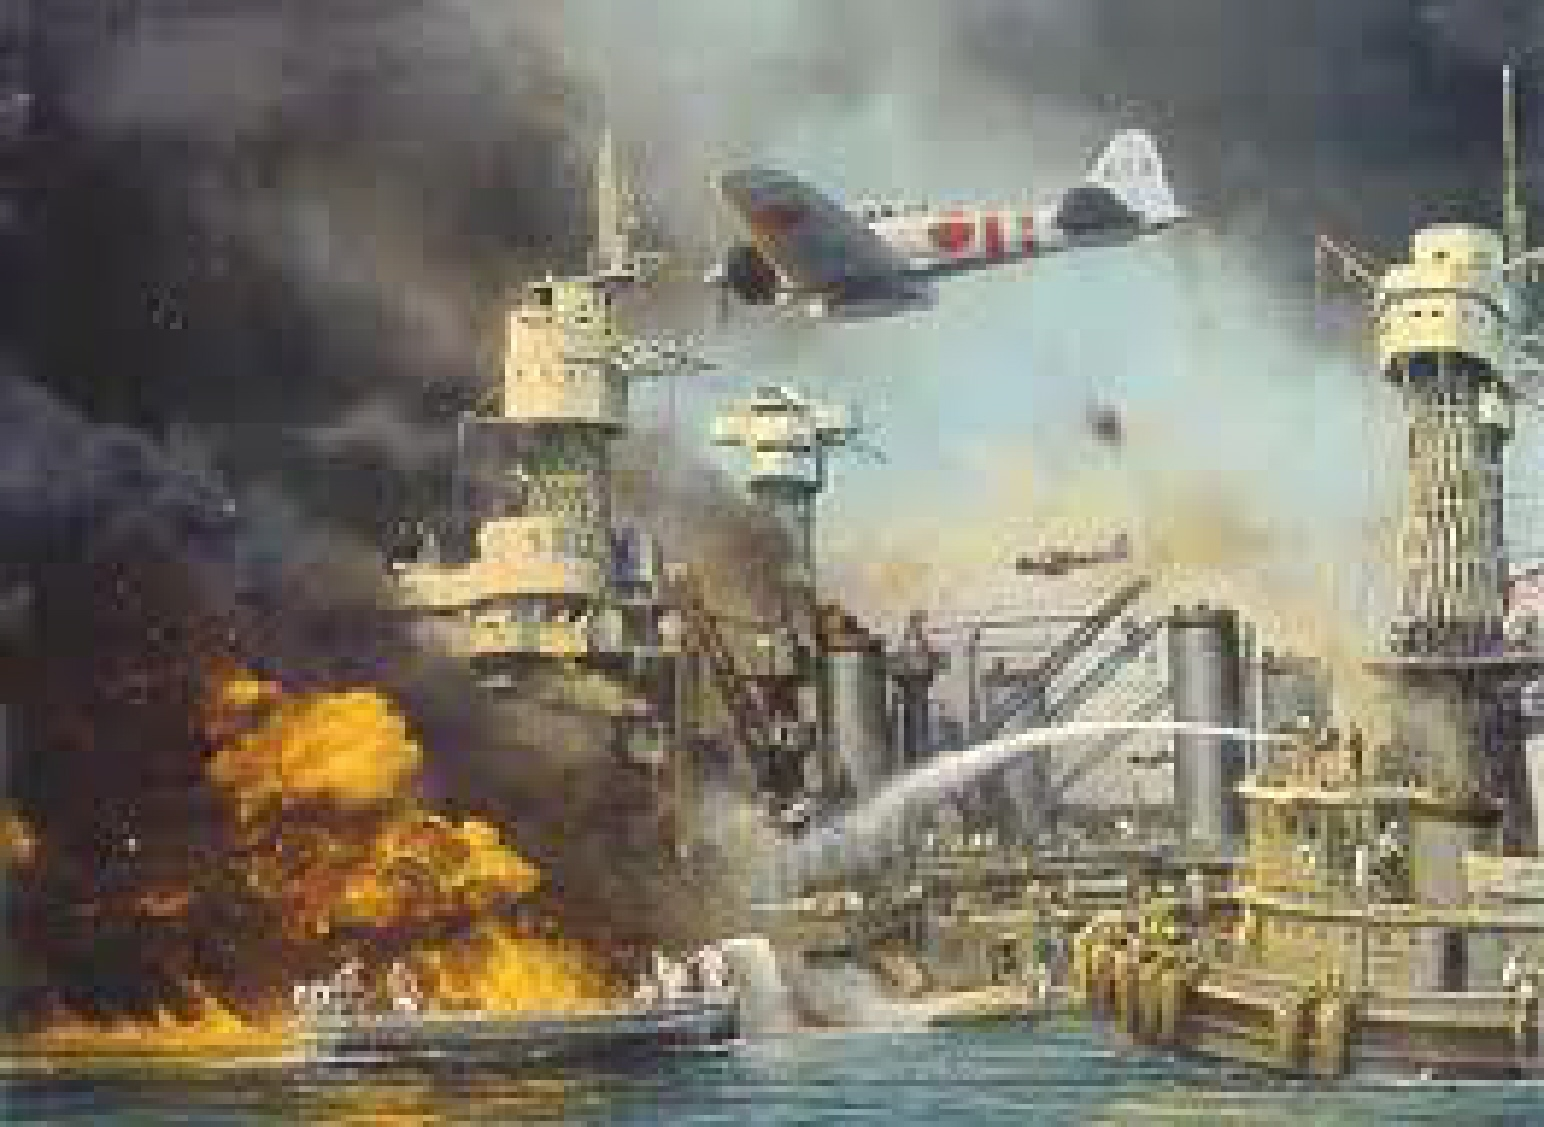 pearl harbor the attack On the morning of december 7, 1941, imperial japan launched a surprise attack on pearl harbor which left more than 2,400 american personnel dead in just 90 minutes of.